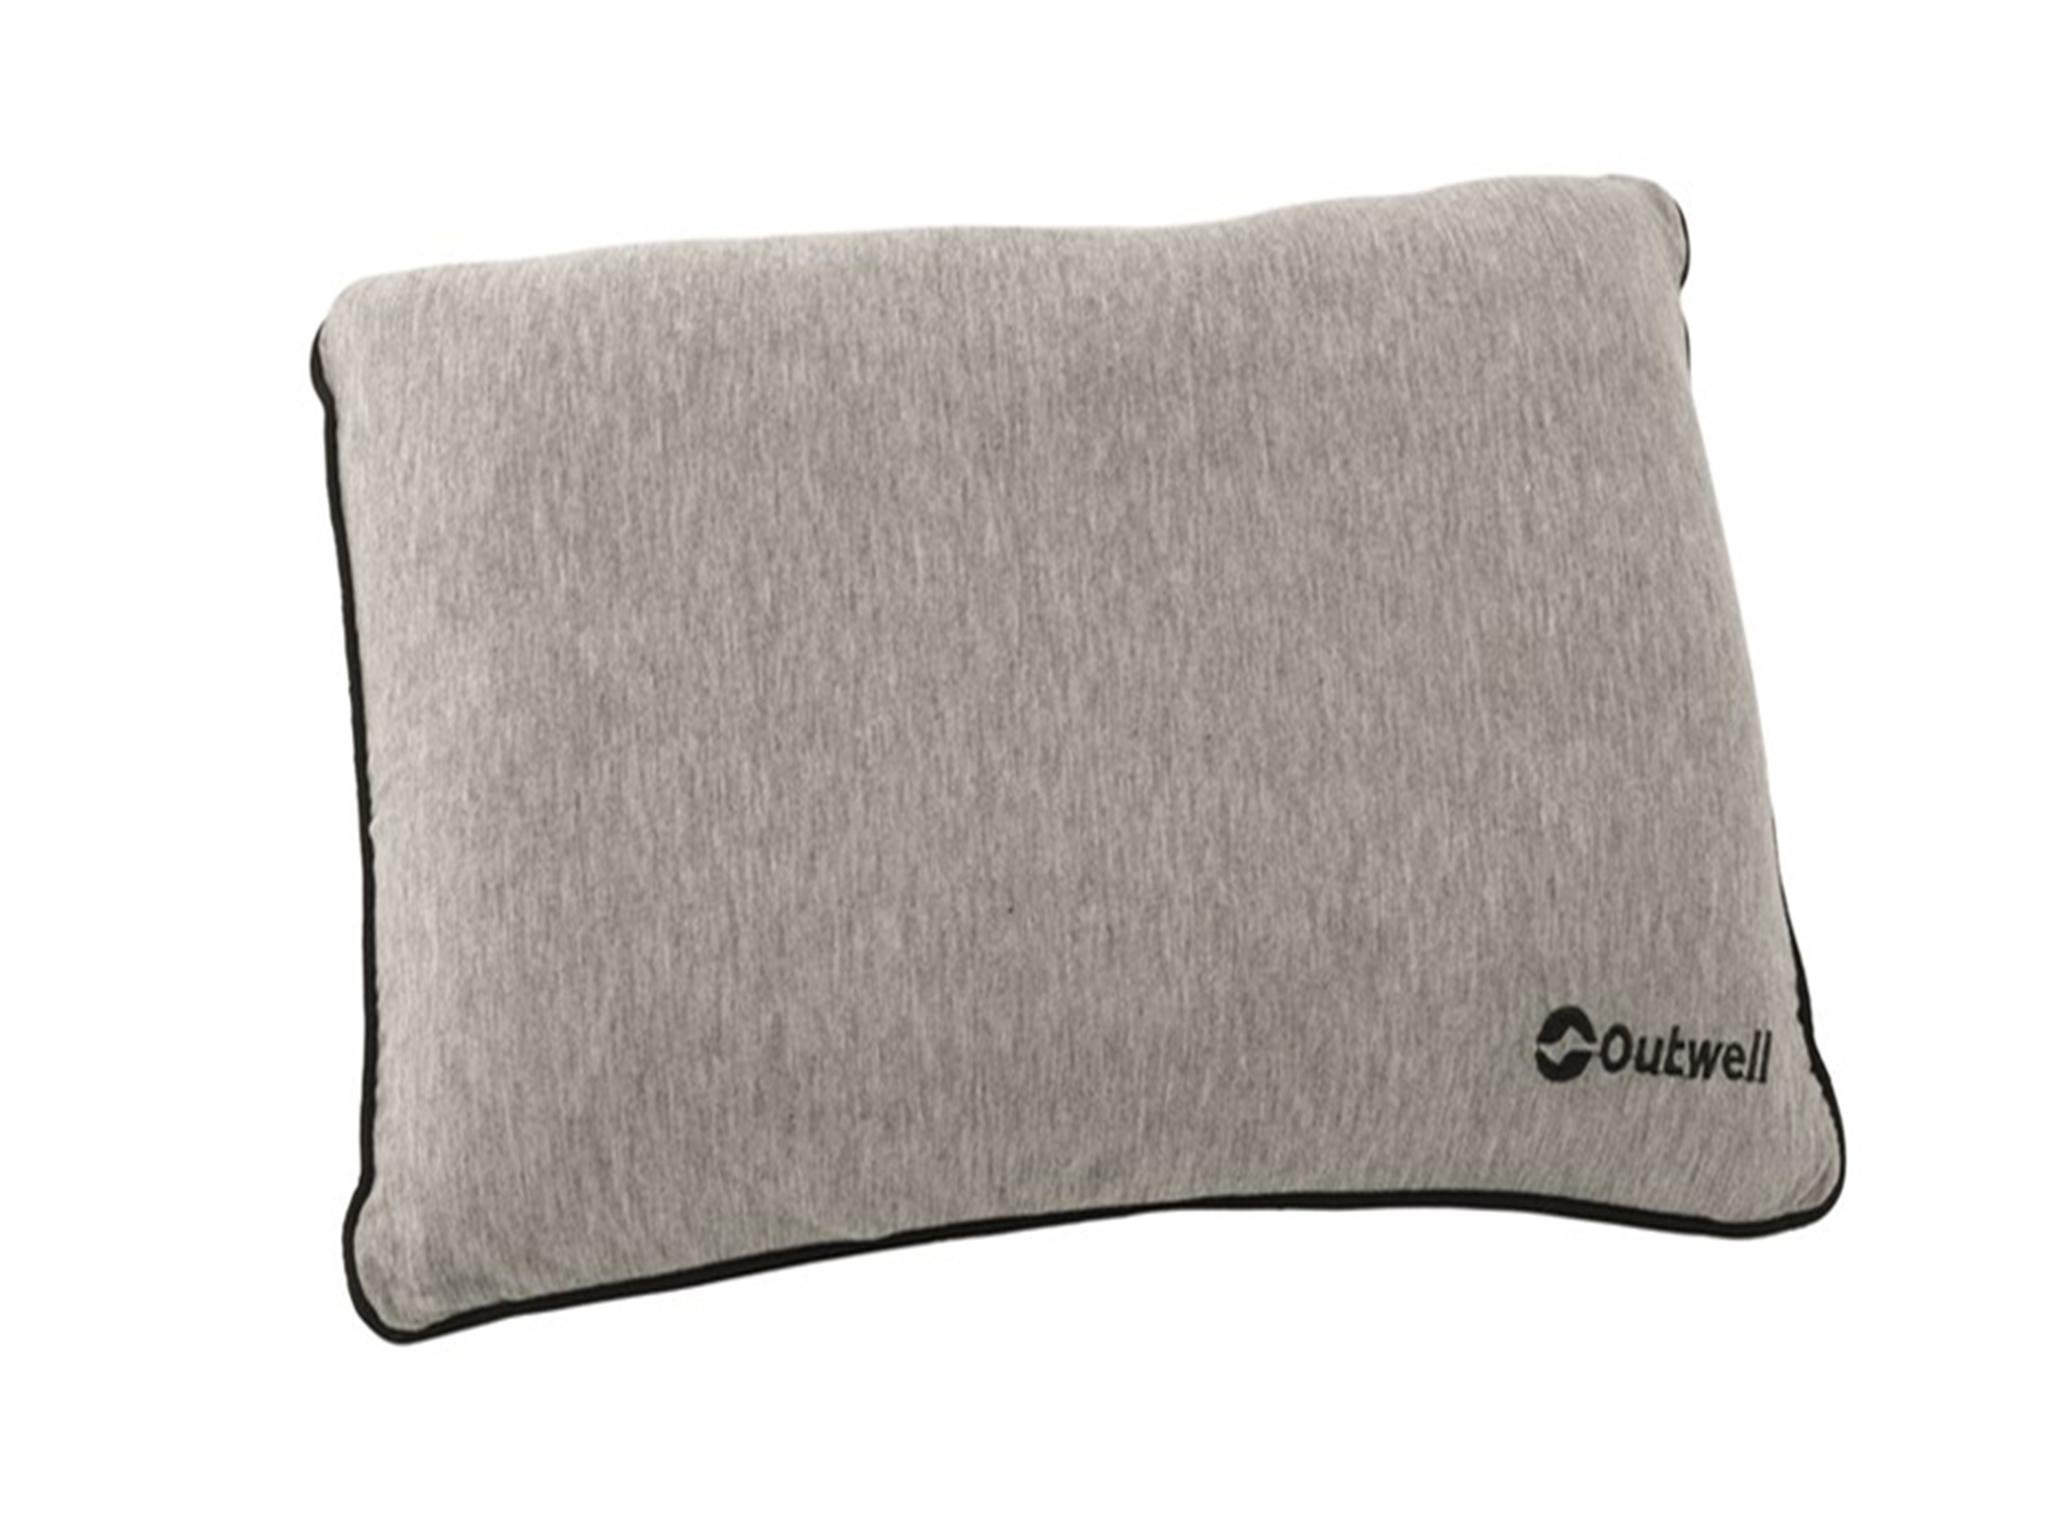 Best Travel Pillows That Are Portable And Comfortable